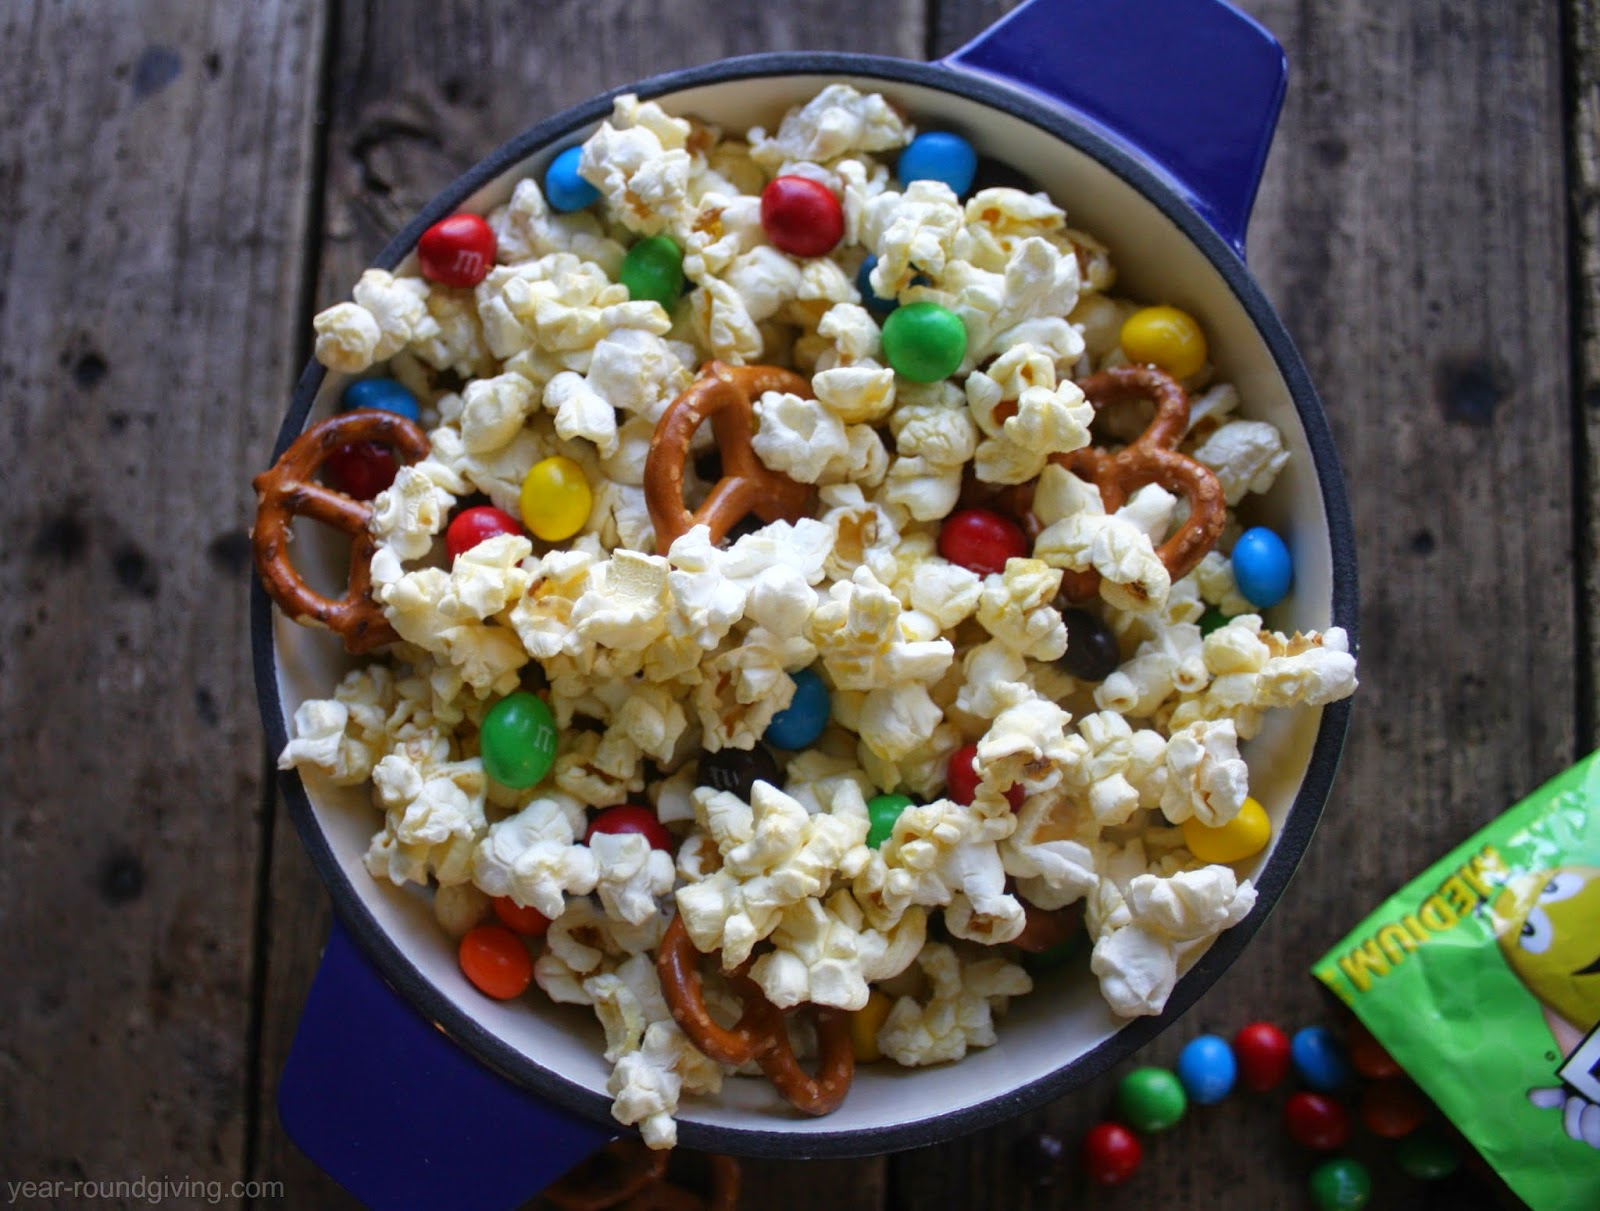 M&M's® Crispy popcorn snack mix recipe